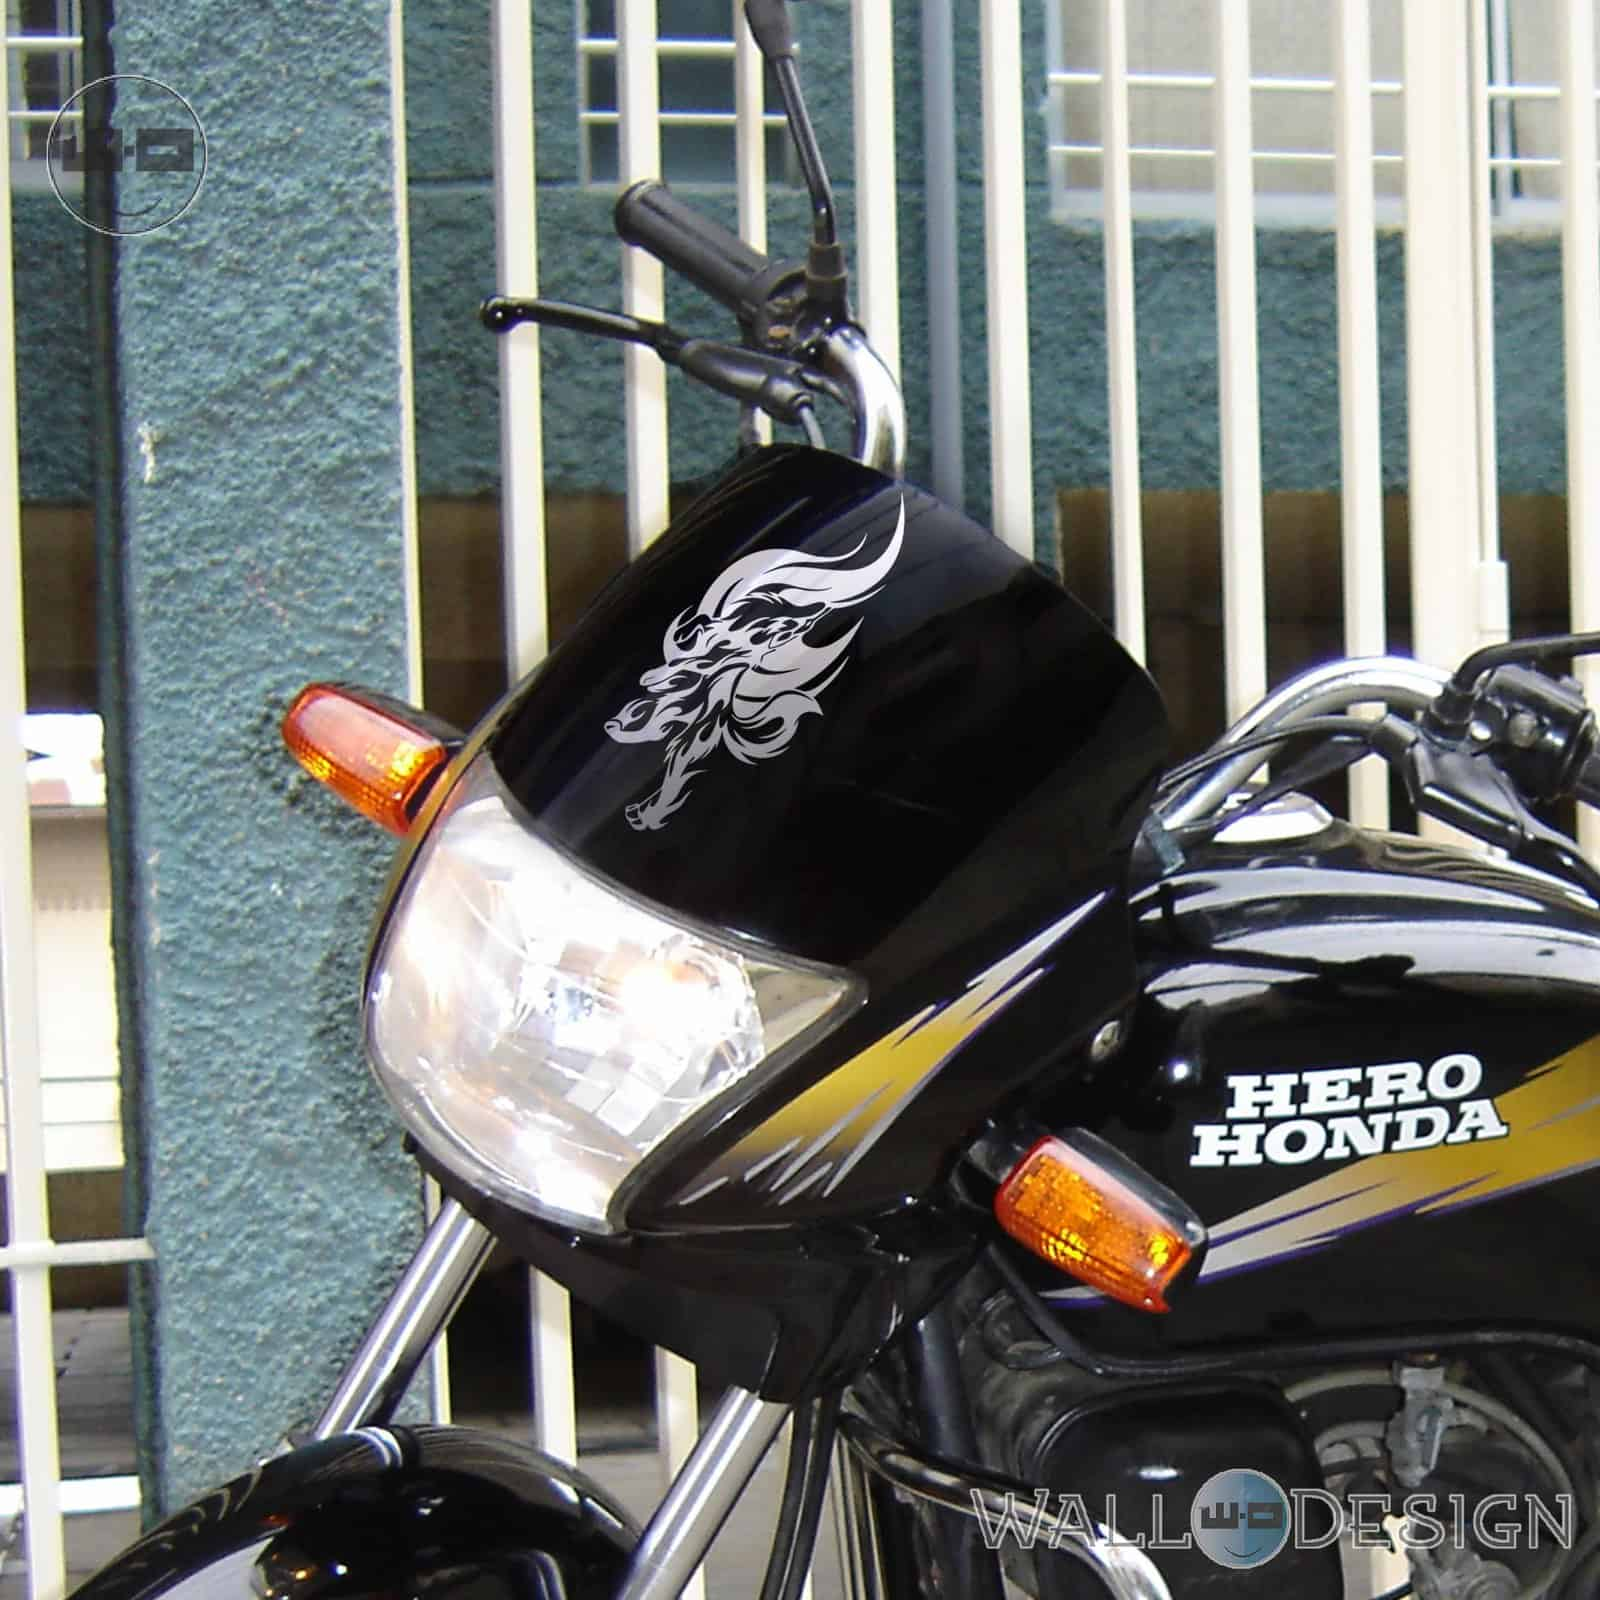 Wdc02037c walldesign bike stickers howl of the wolverine silver jpg